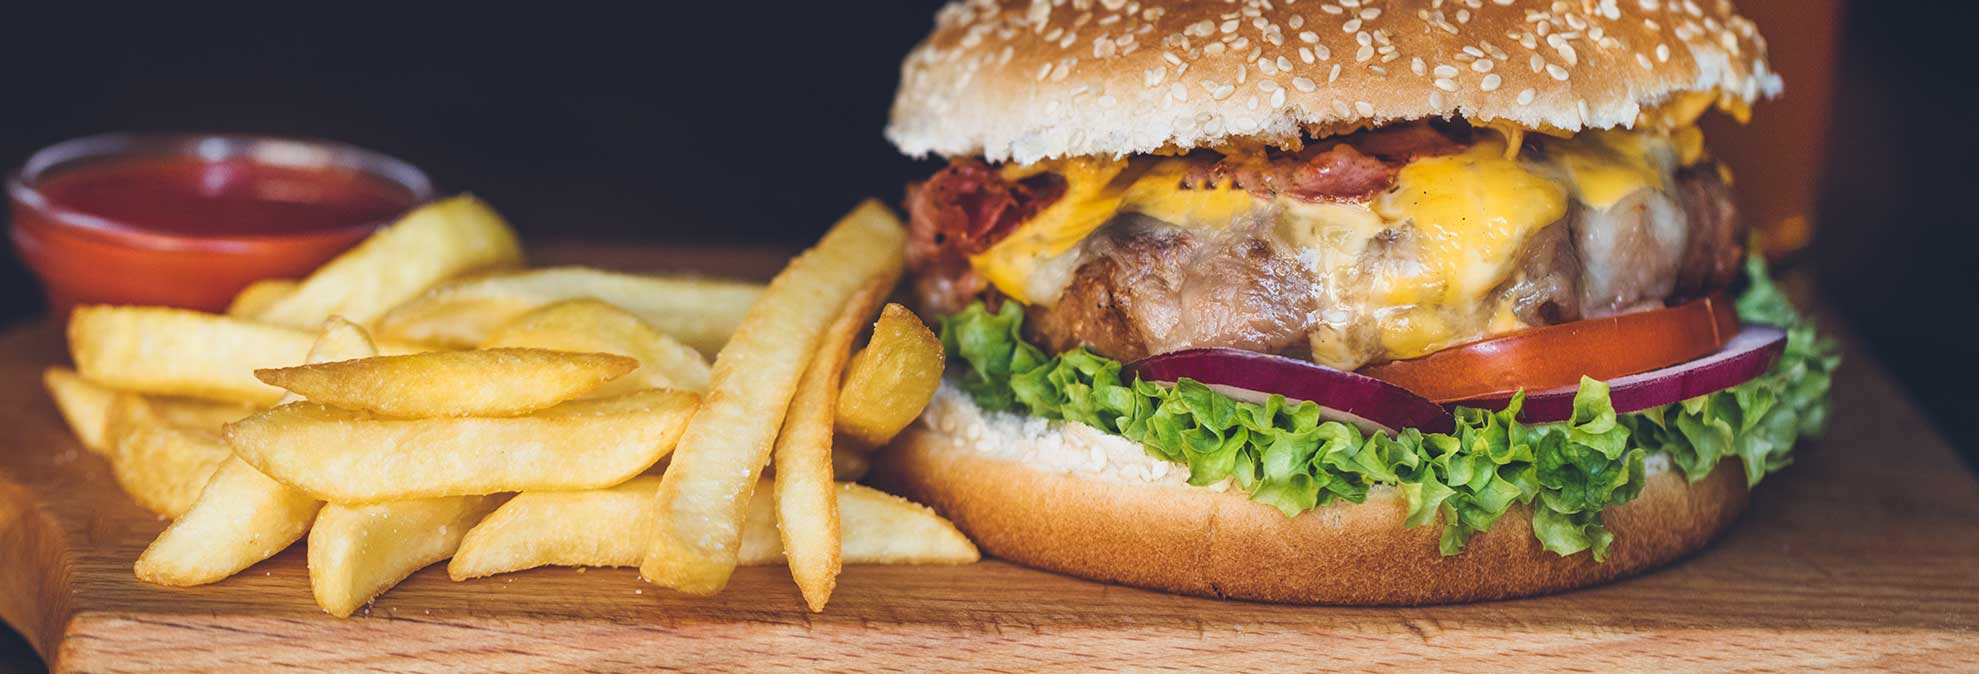 Calories on menus: do they work recommend